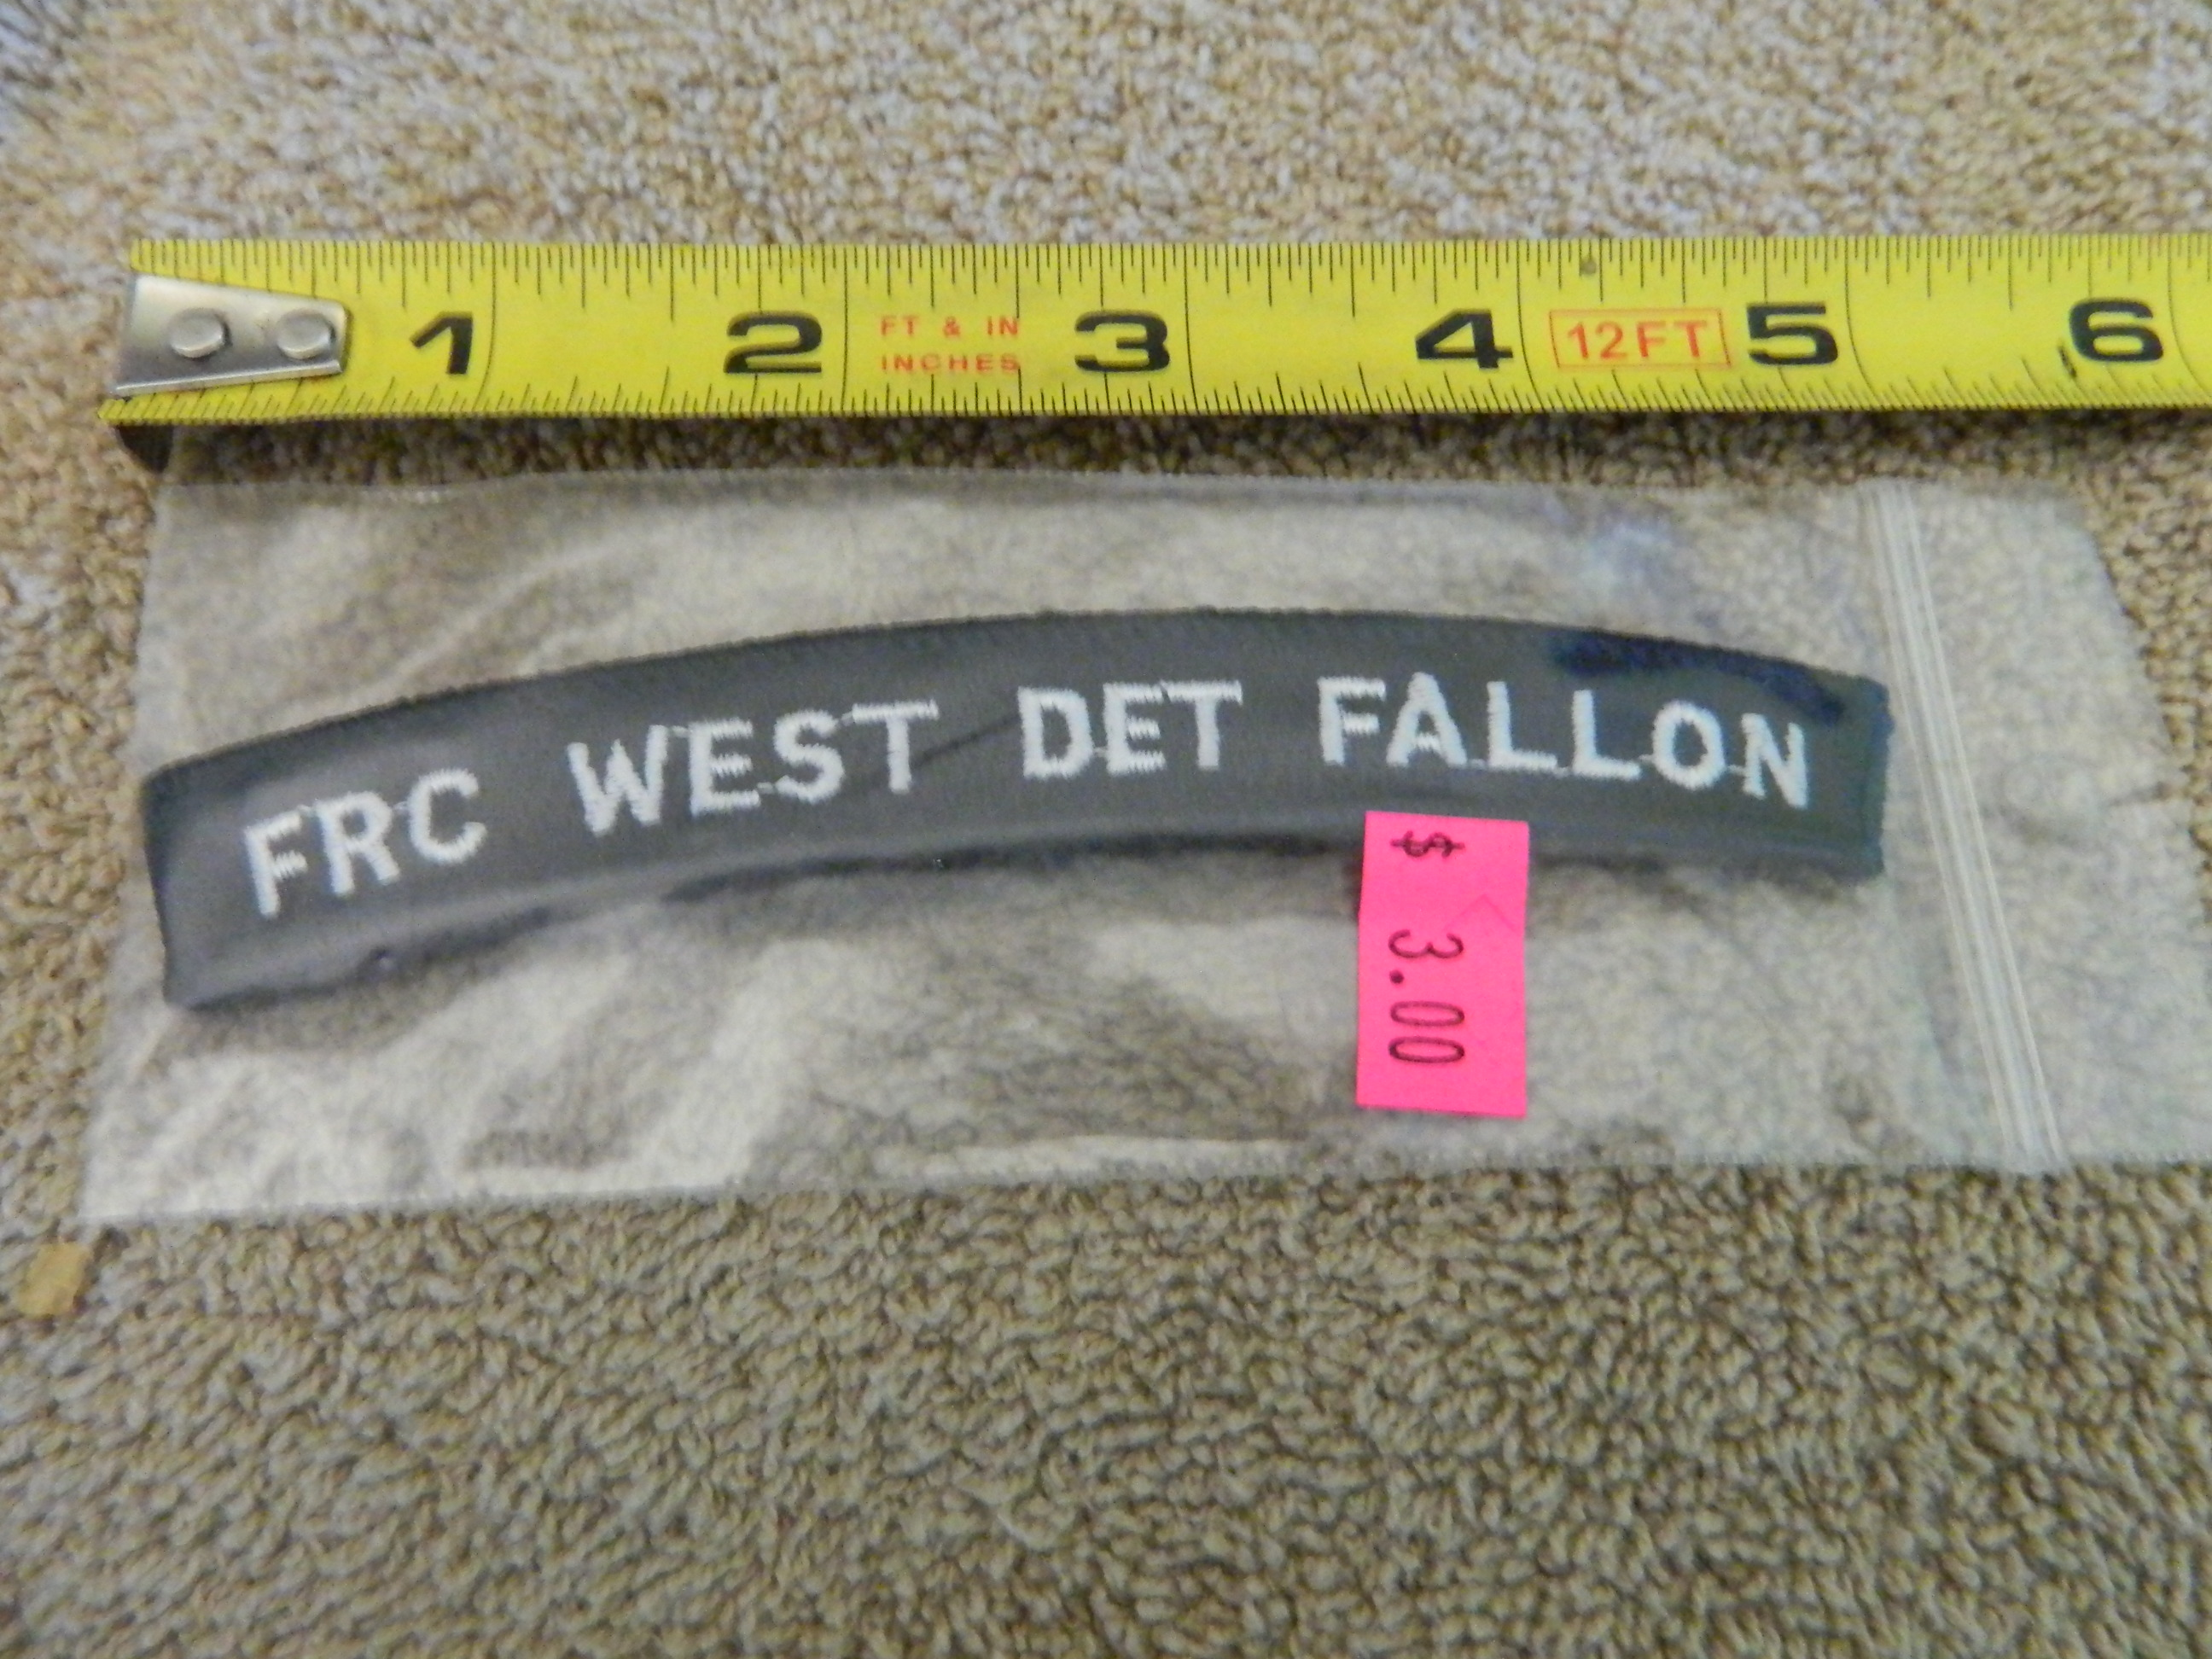 USN Rocker: FRC WEST DET FALLON